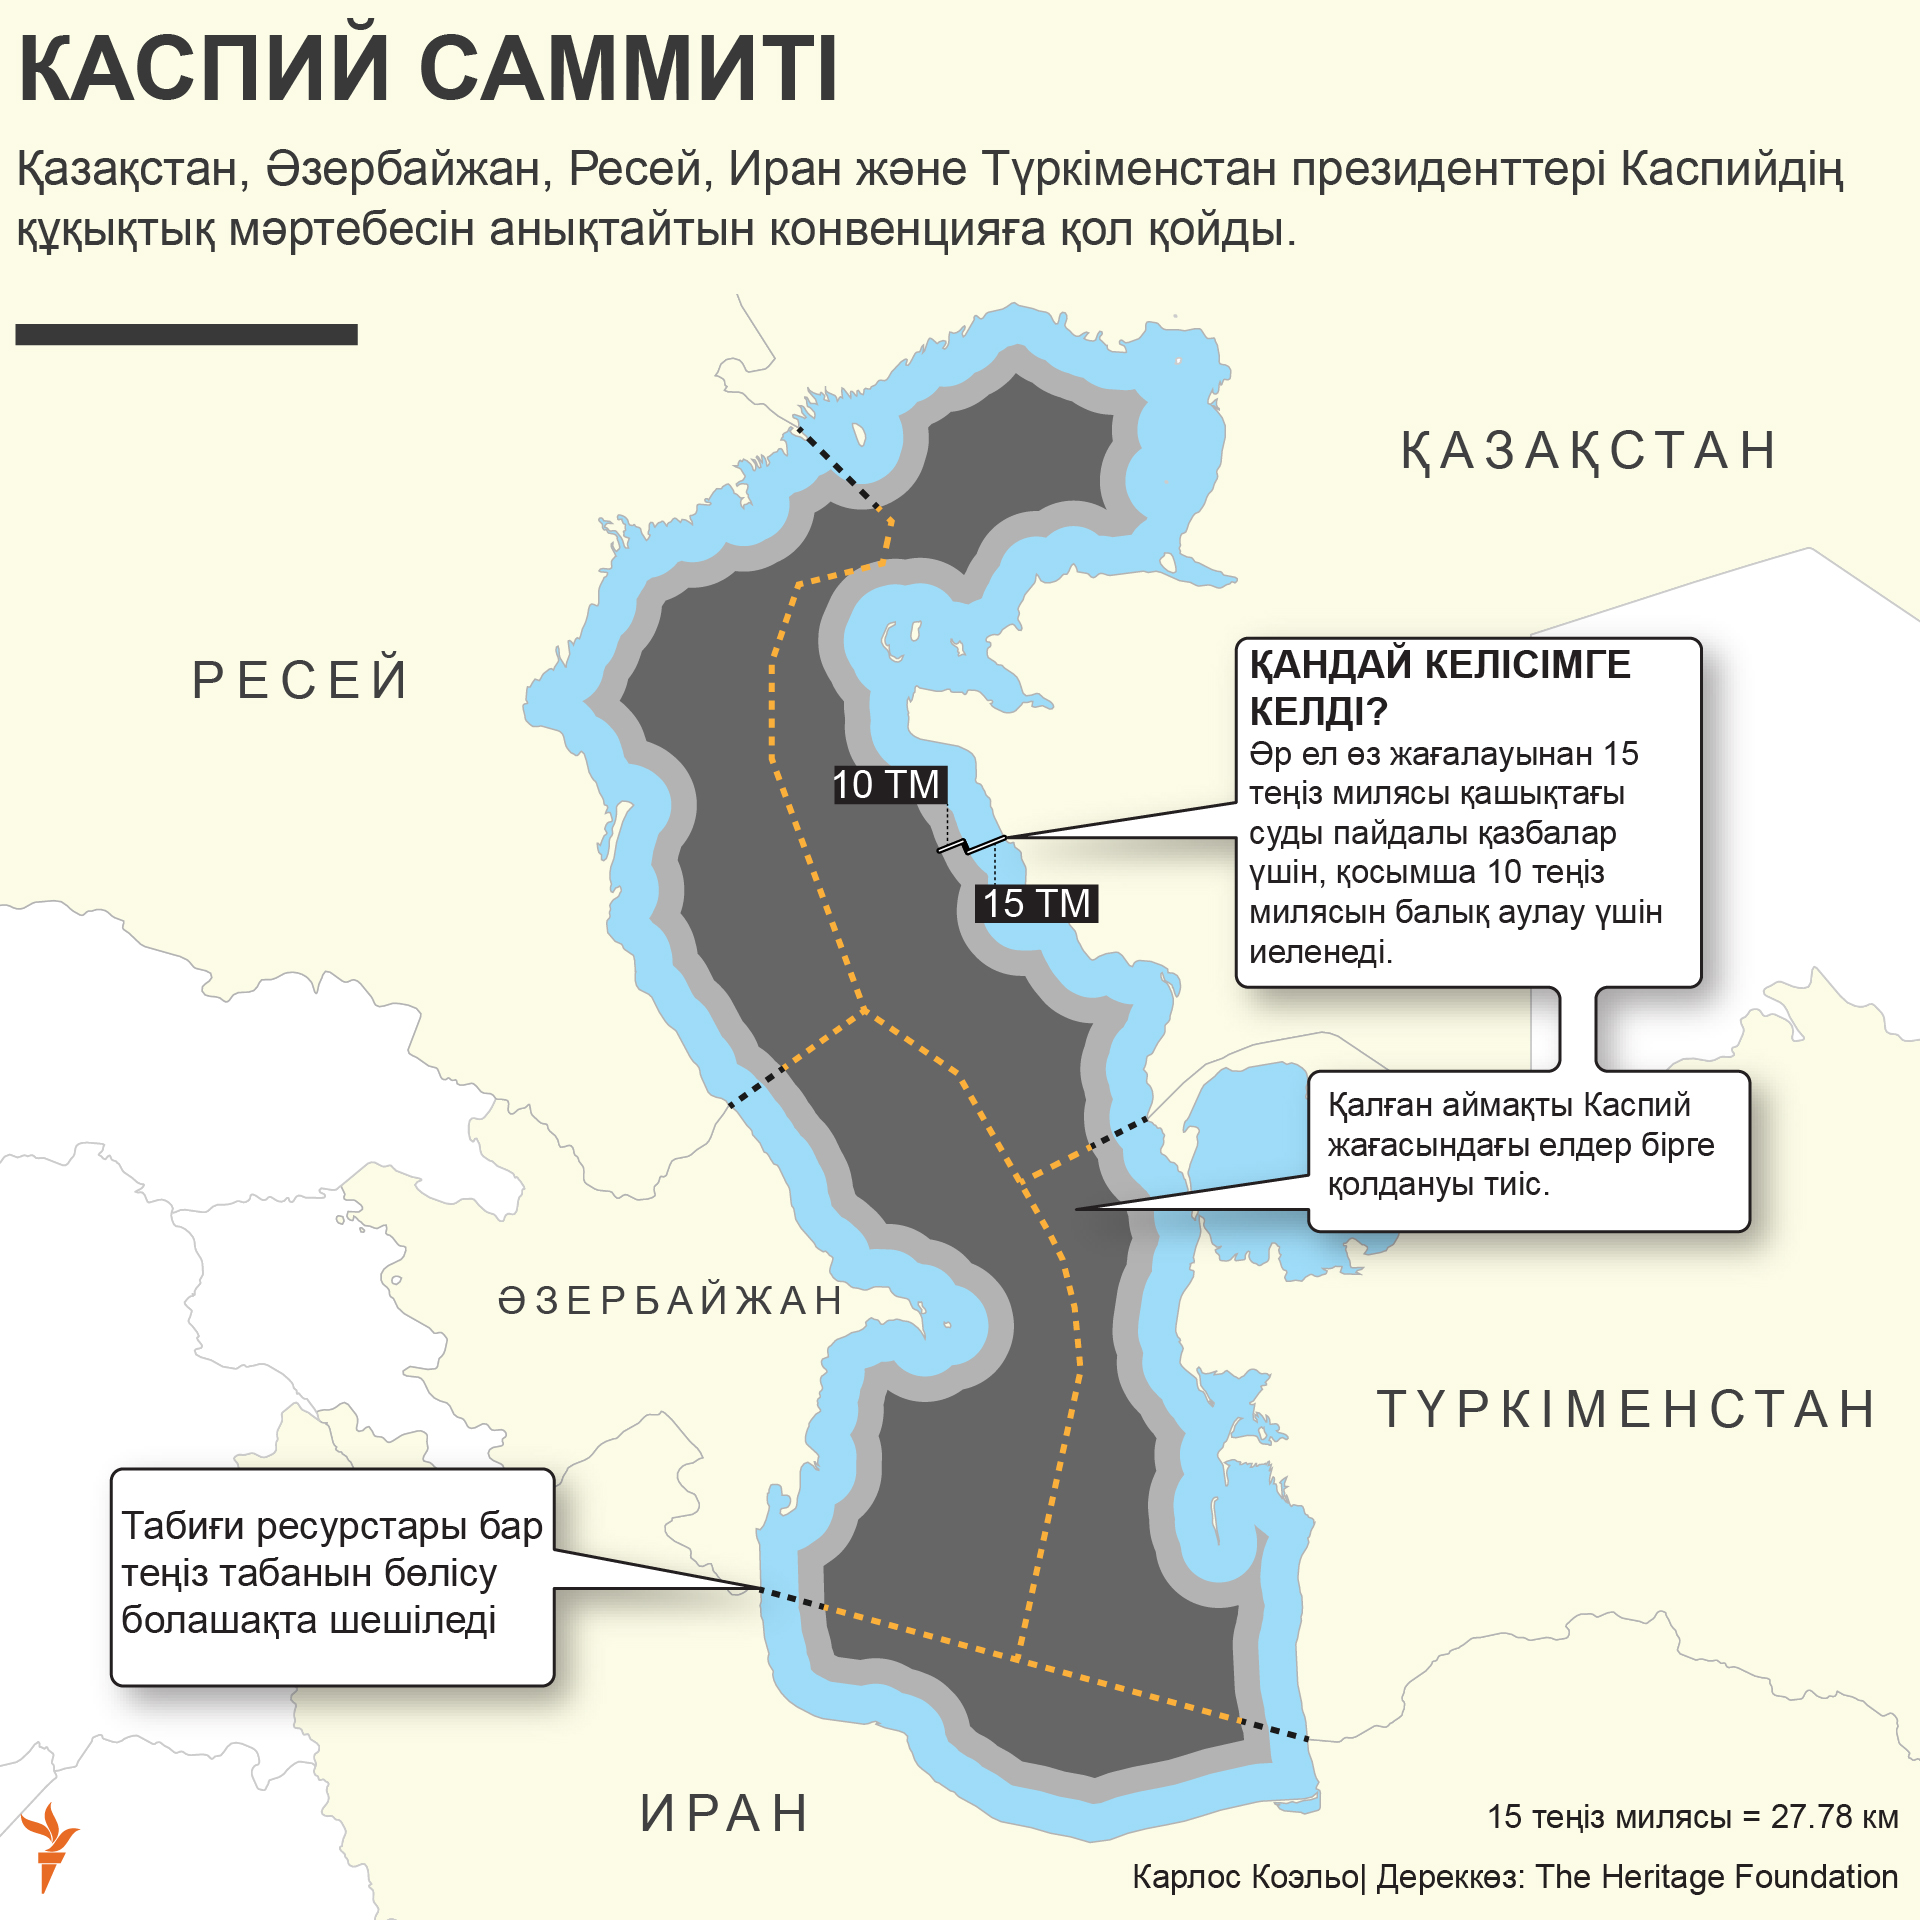 infographic about caspian summit